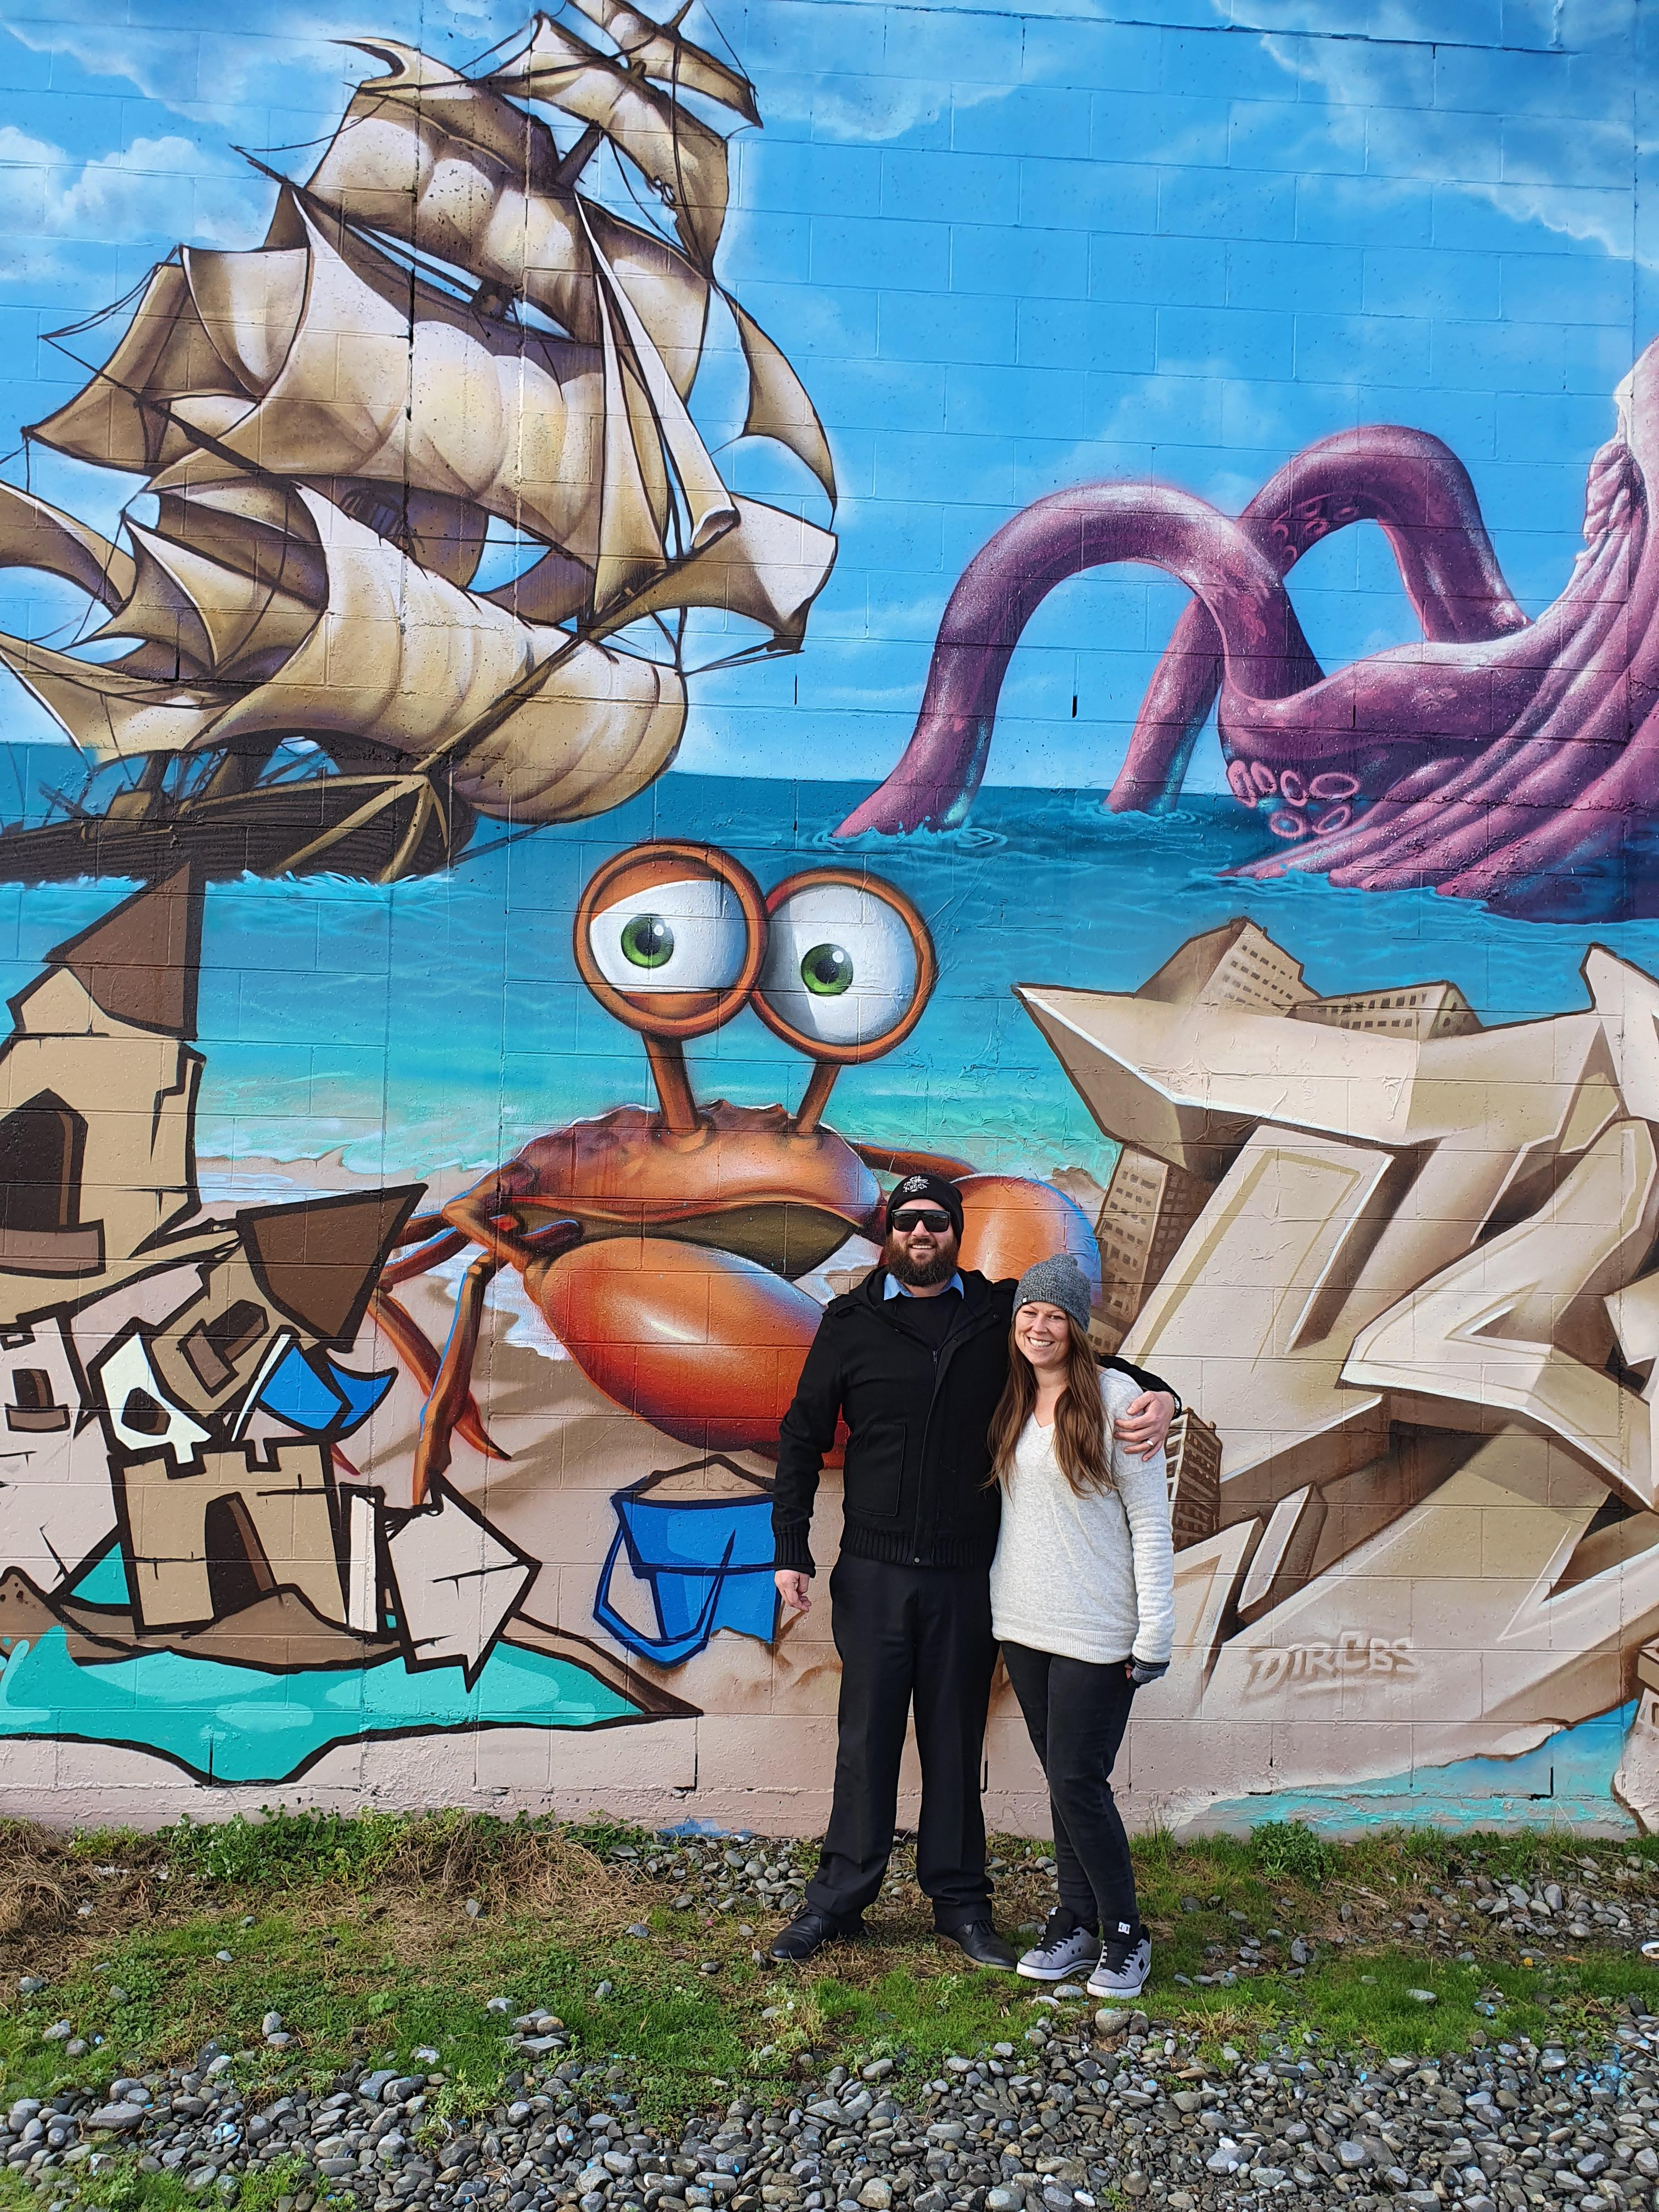 New Brighton Outdoor Art Festival organisers Gavin and Kylie Fantastic were excited to showcase...